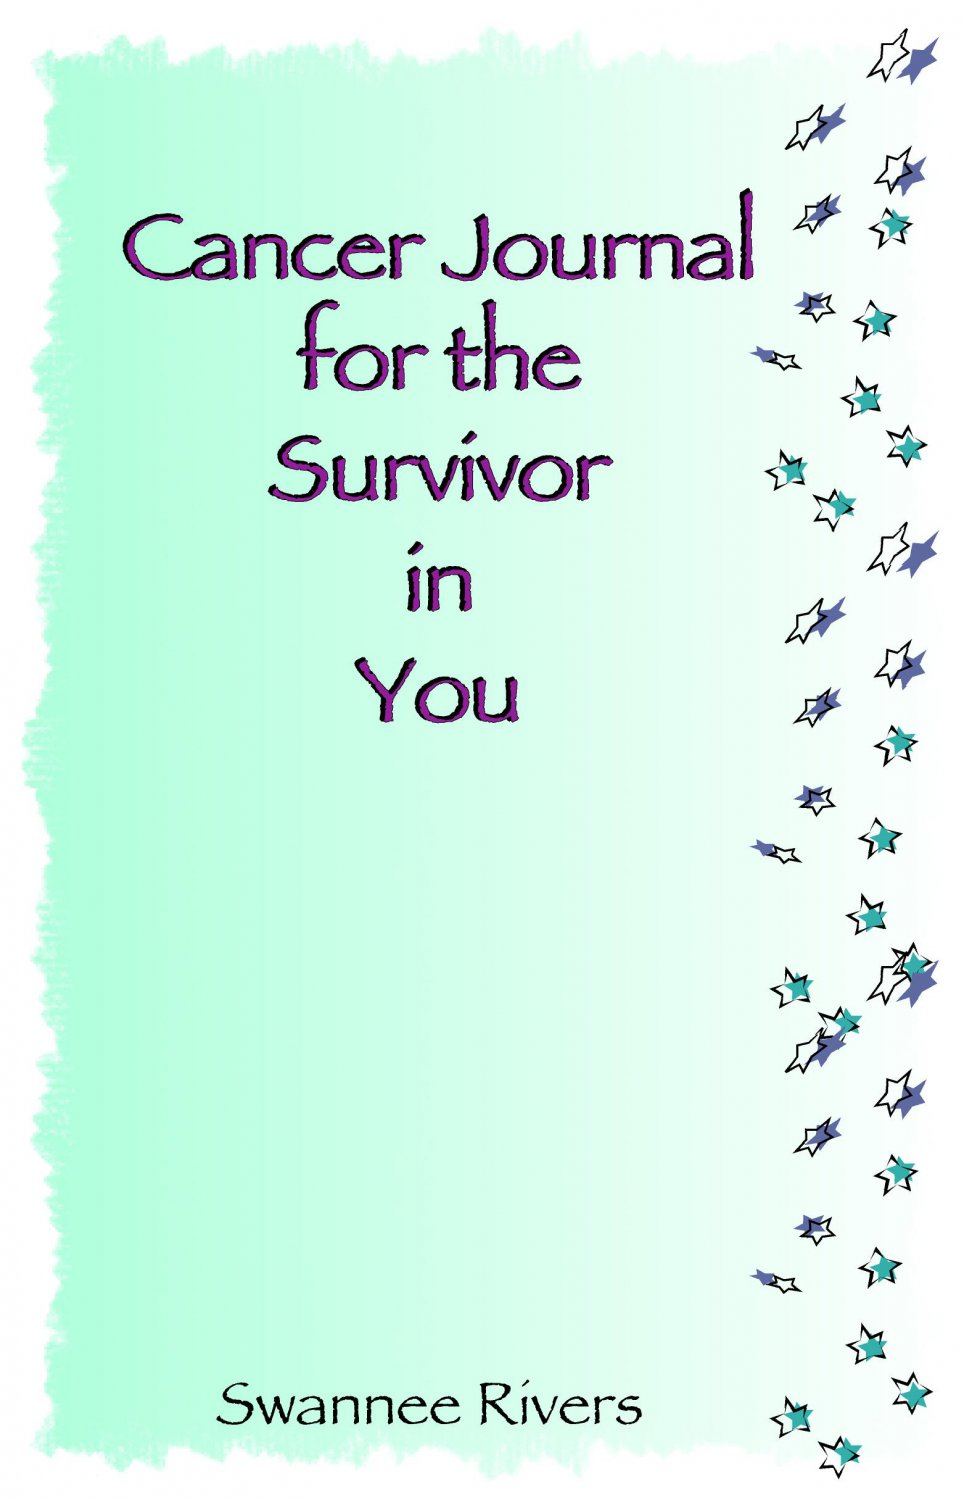 Cancer Journal For the Survivor in You II